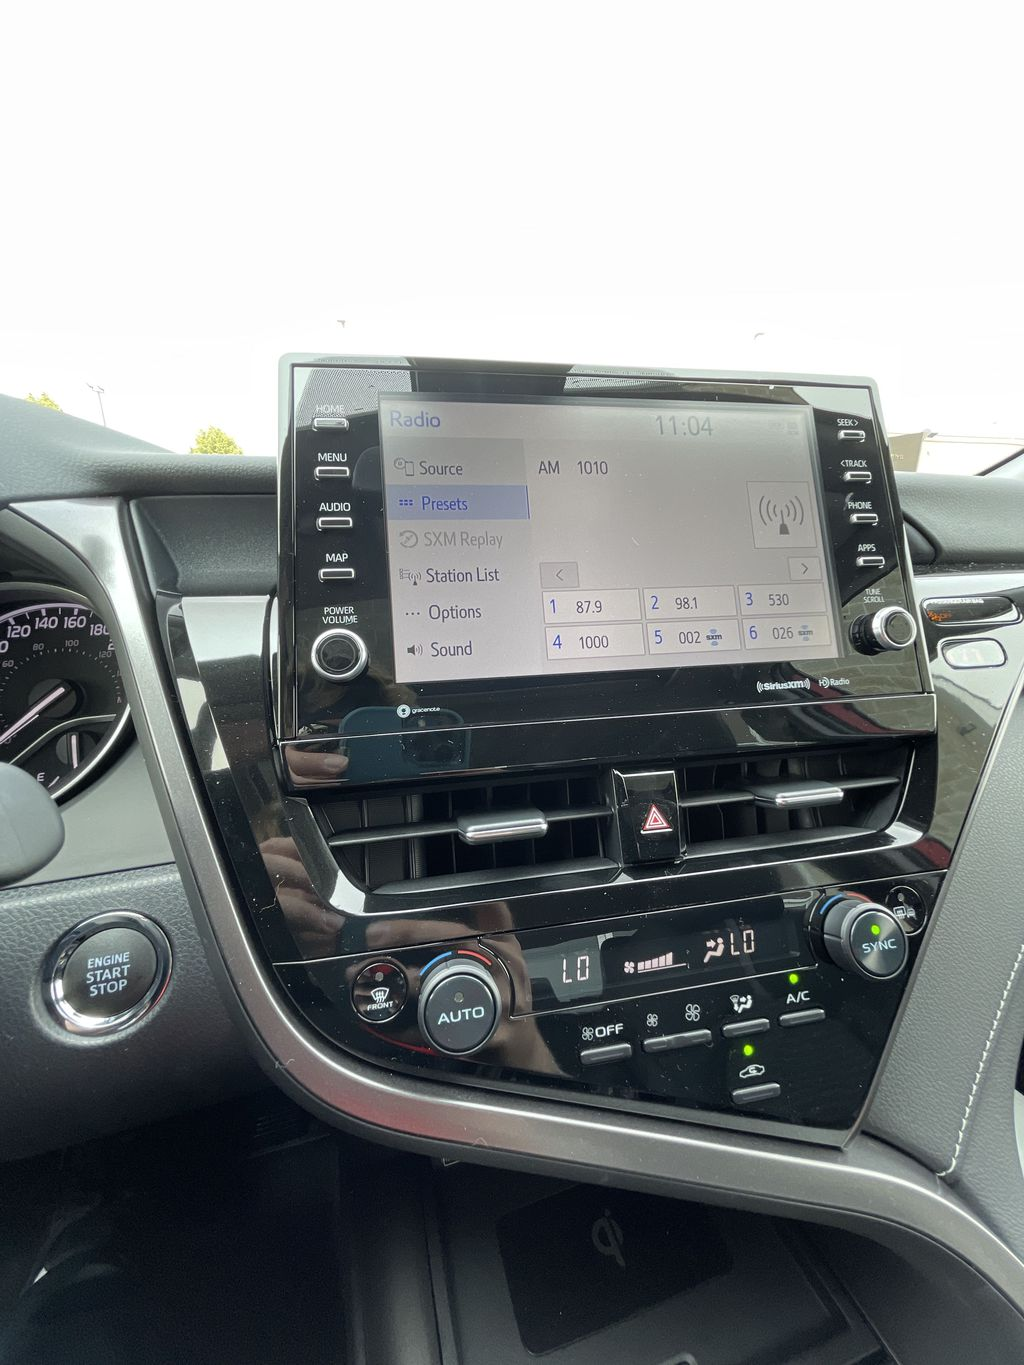 Red[Supersonic Red] 2021 Toyota Camry AWD SE UPGRADE G11BKT BD Strng Wheel/Dash Photo: Frm Rear in Brampton ON